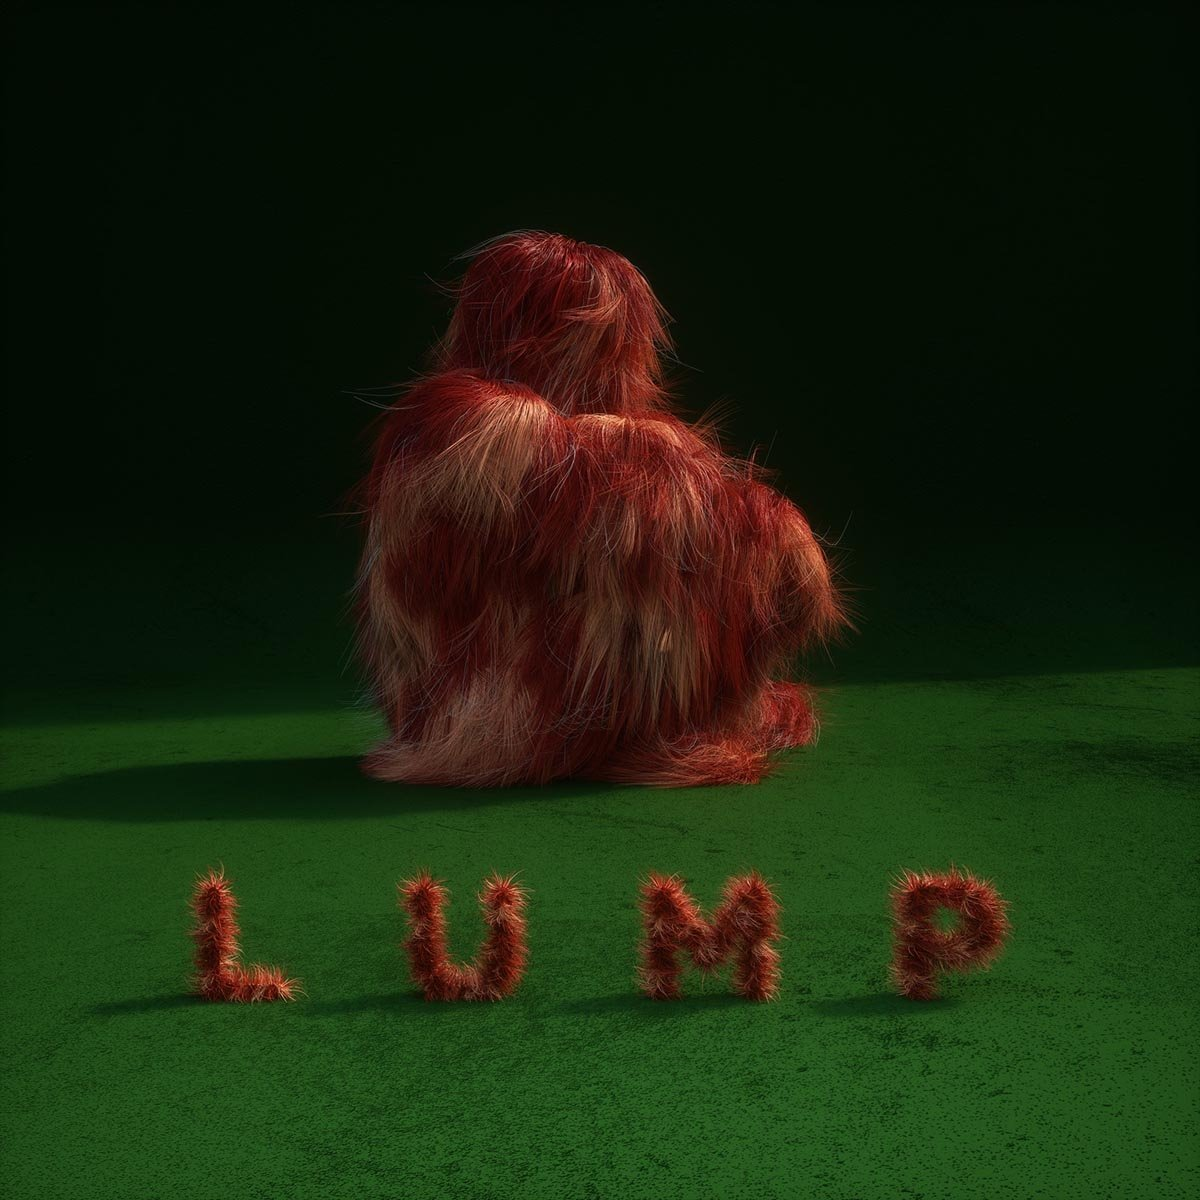 LUMP by Lump image